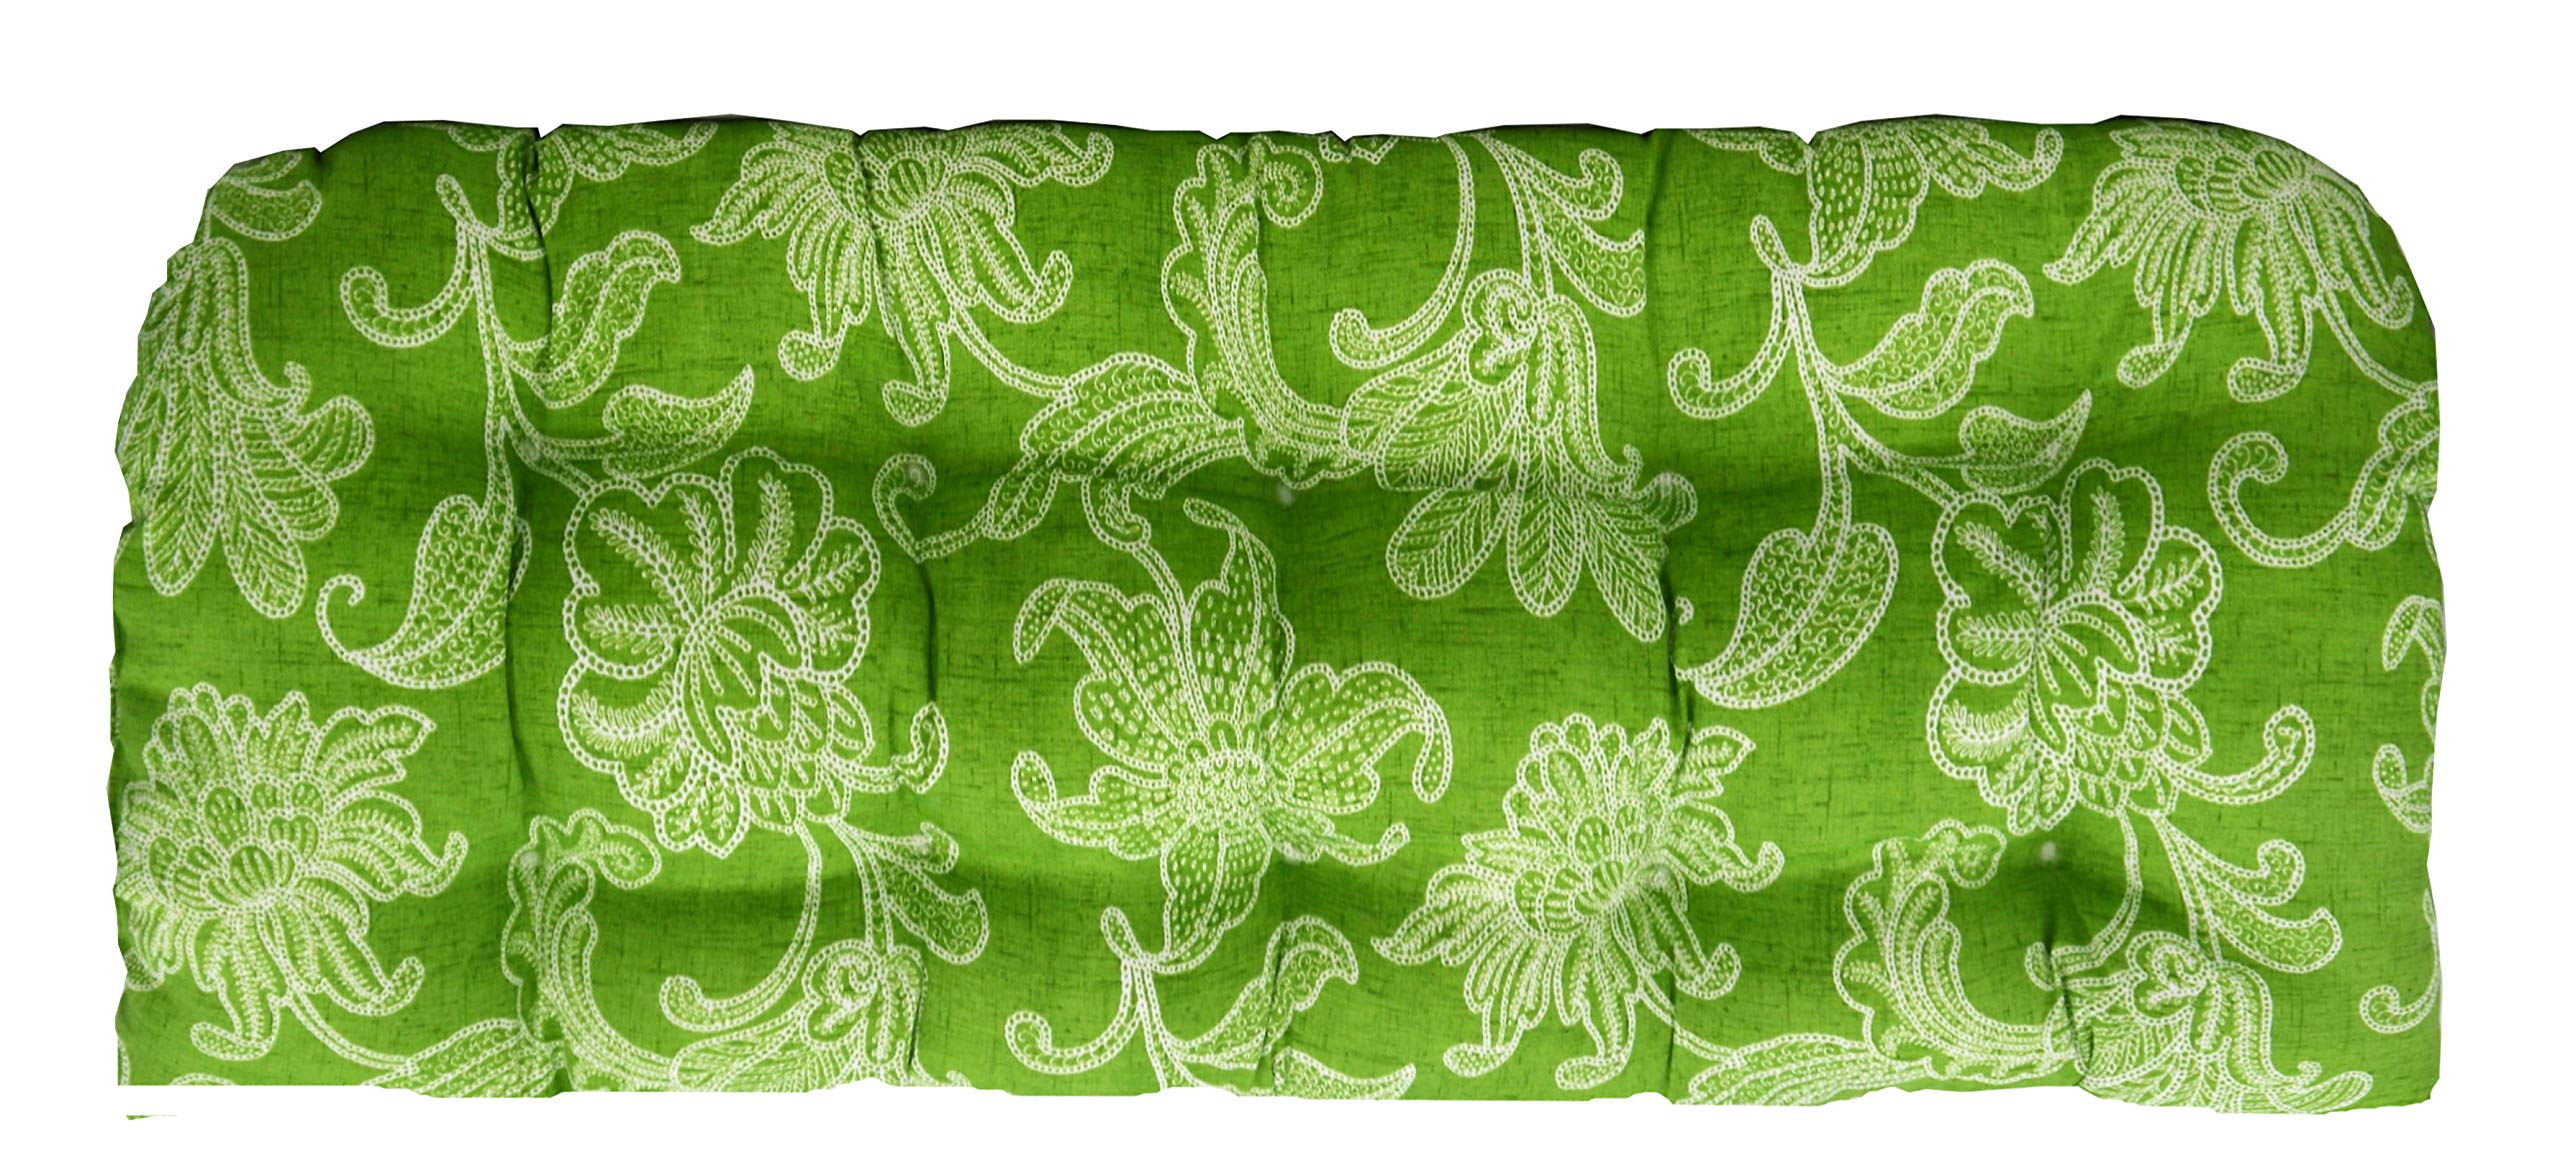 RSH Décor Indoor/Outdoor Wicker Chair Cushion Loveseat - Green and White Floral